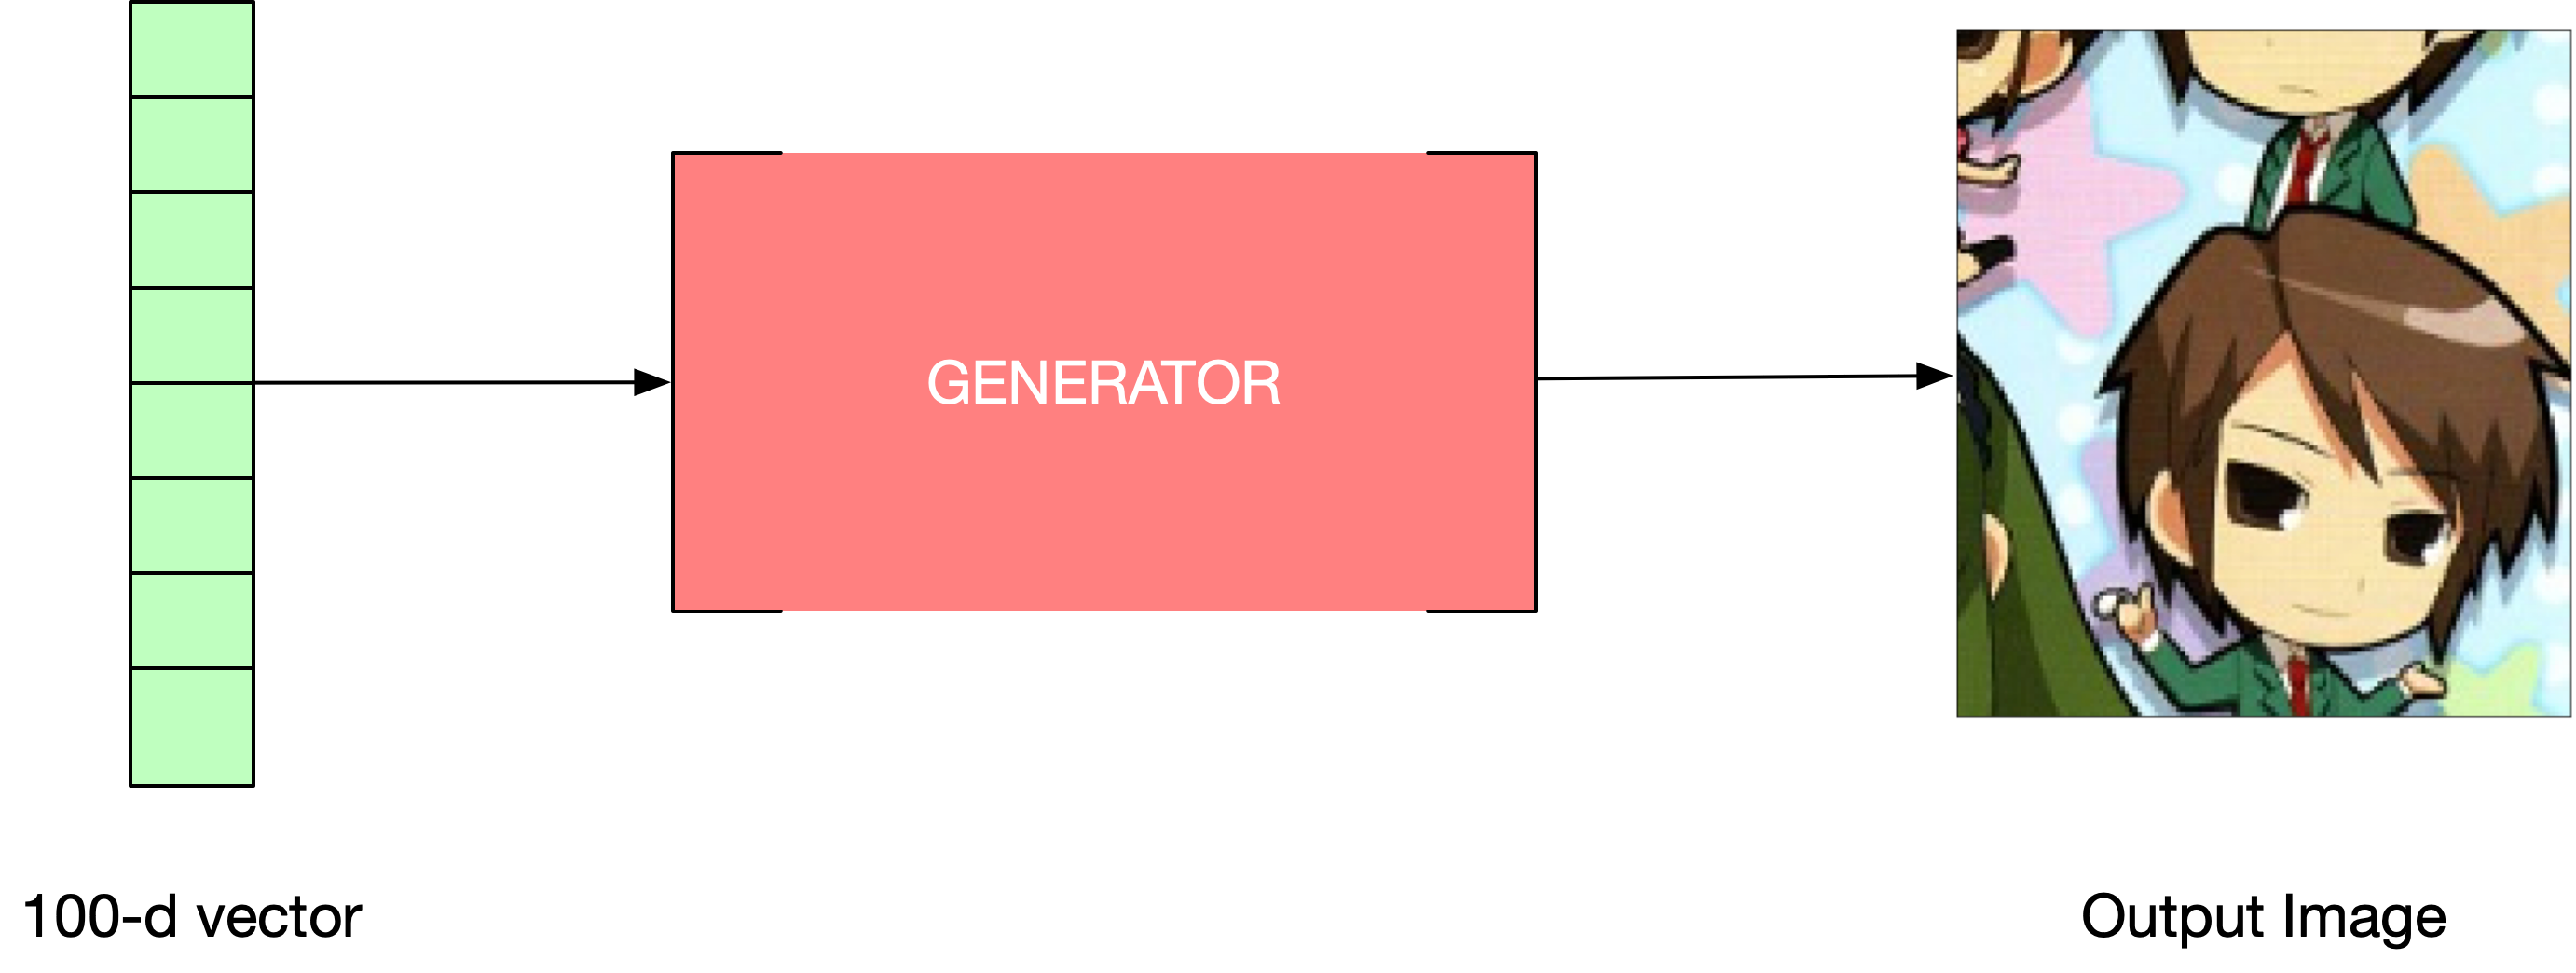 Generator as a BlackBox